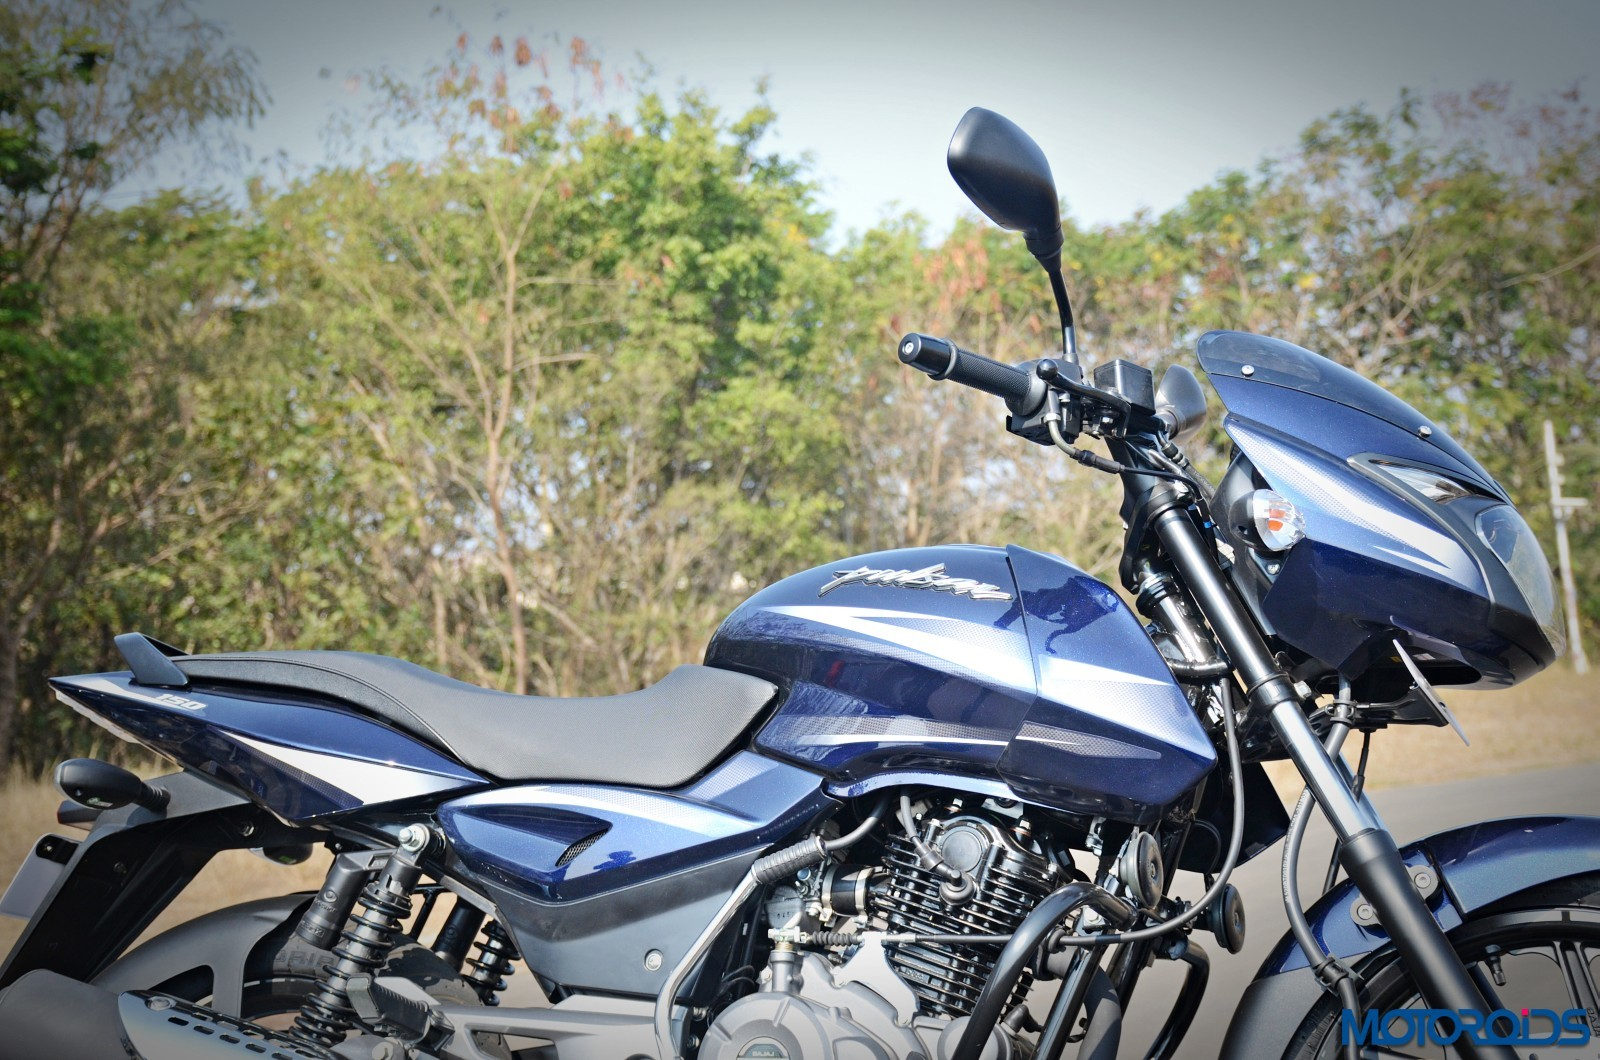 Bajaj Pulsar 150 Price In India, Variants, Specifications - Motoroids